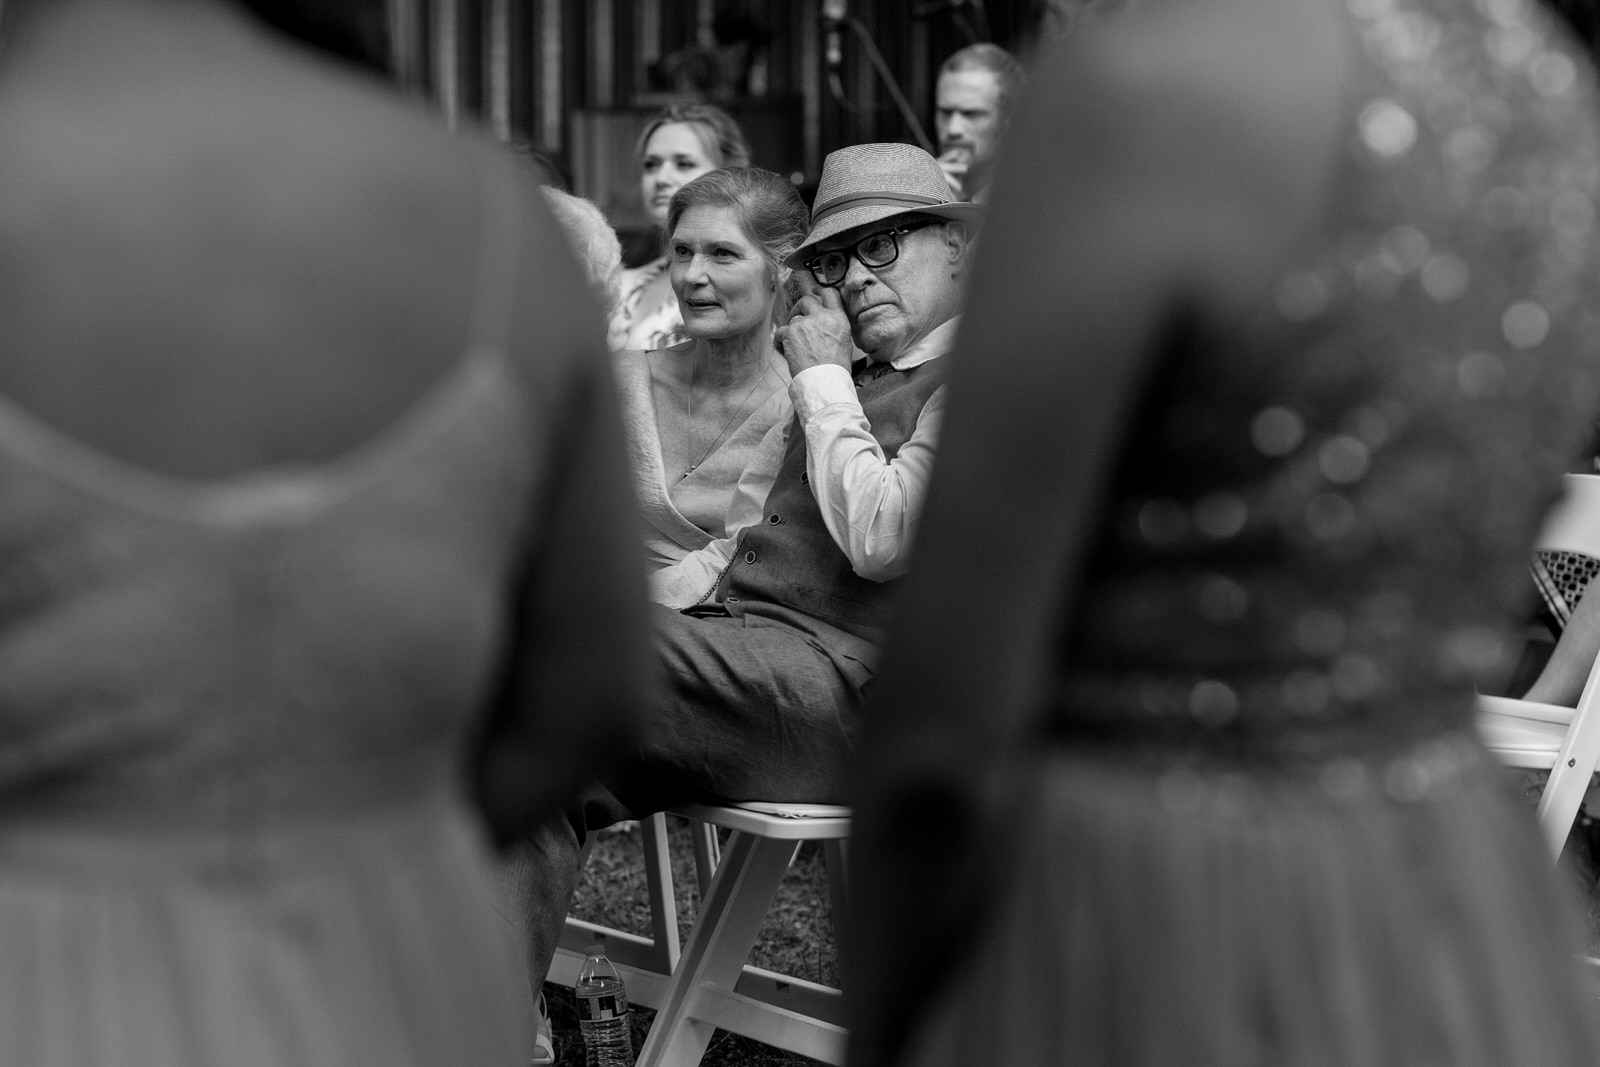 black and white of a father of the bride wiping a tear from his eye during the ceremony, framed by the torsos of two bridesmaids